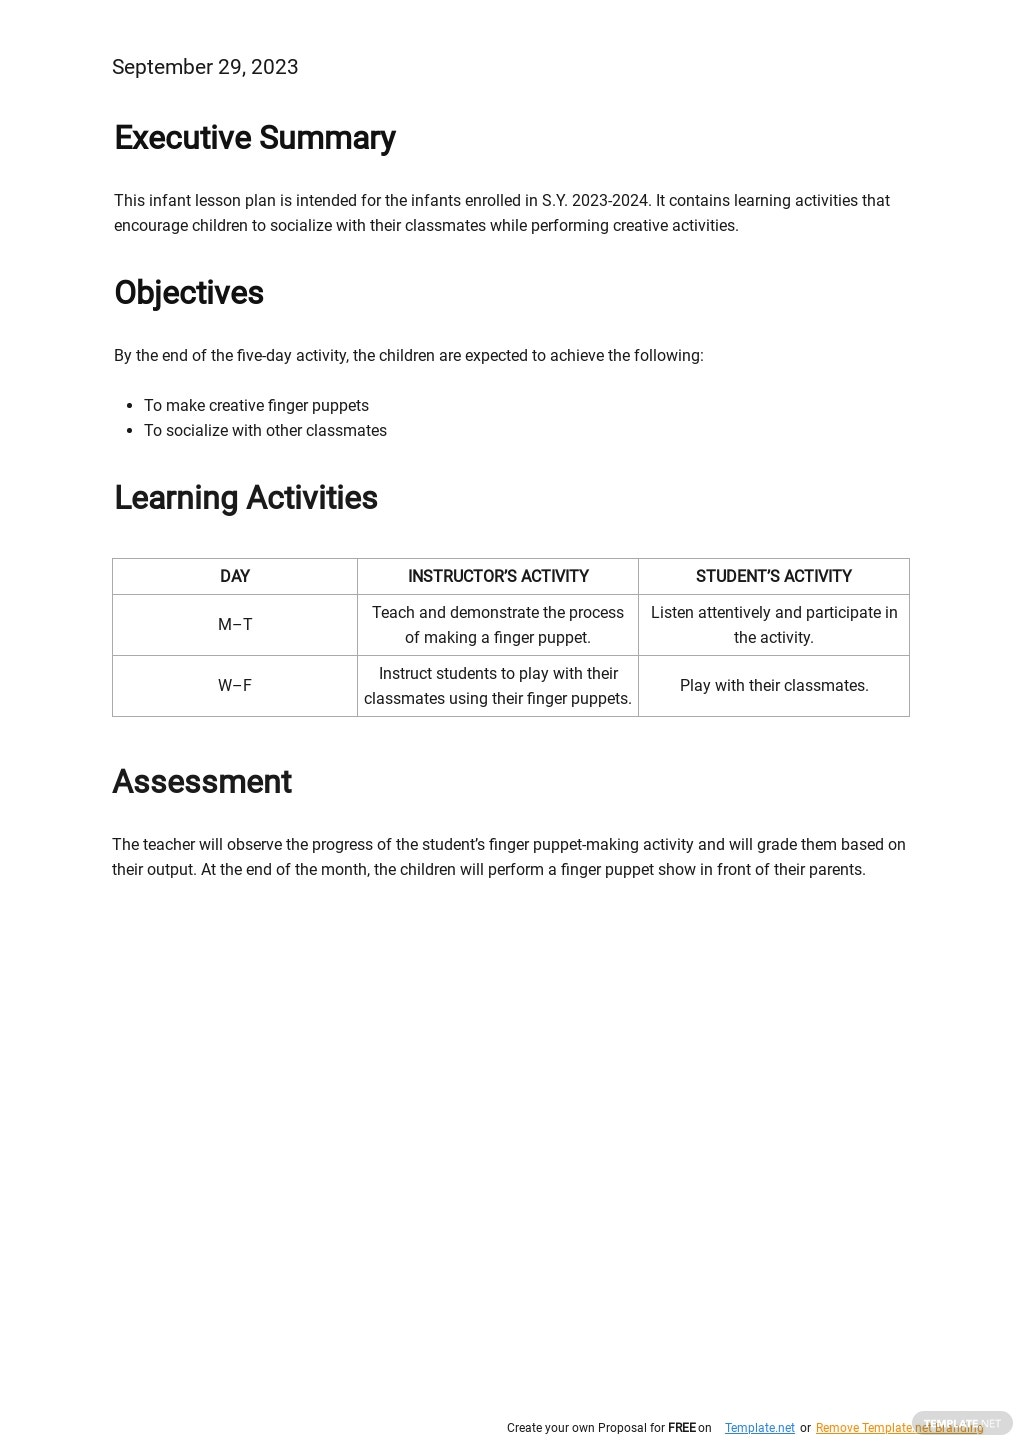 Free Blank Infant Lesson Plan Template 1.jpe